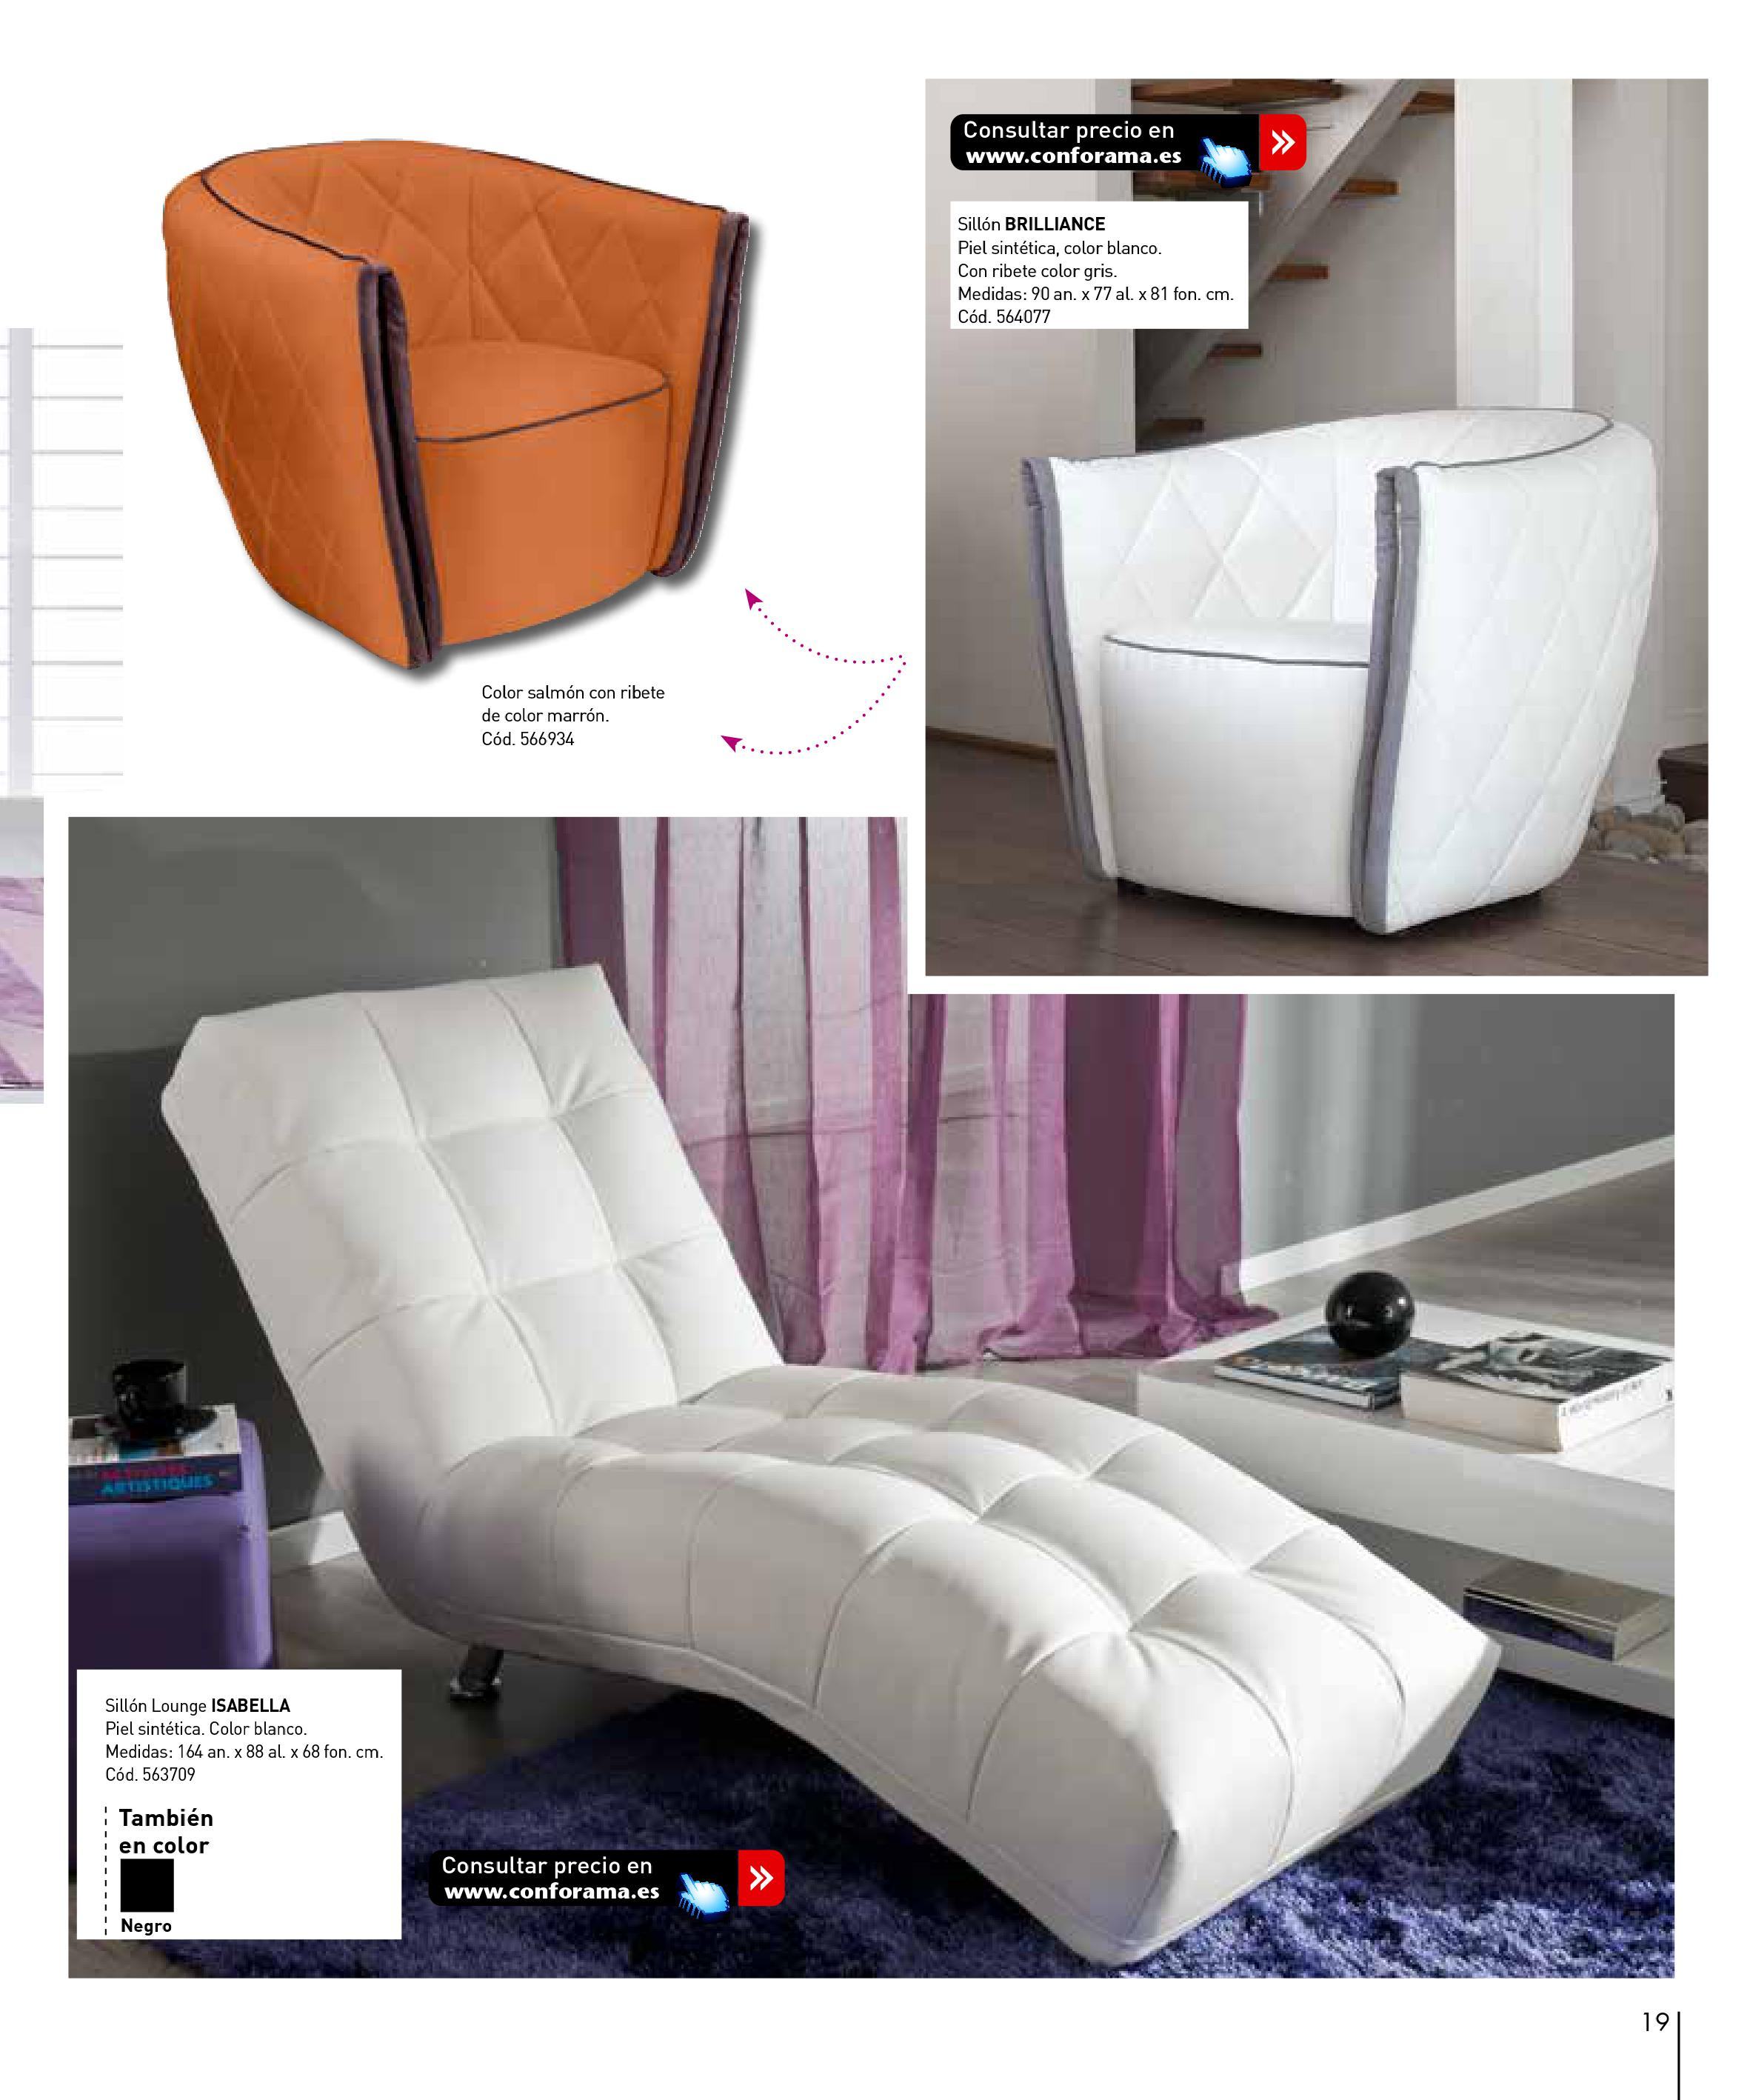 Sofas conforama 201519 for Sofas conforama catalogo